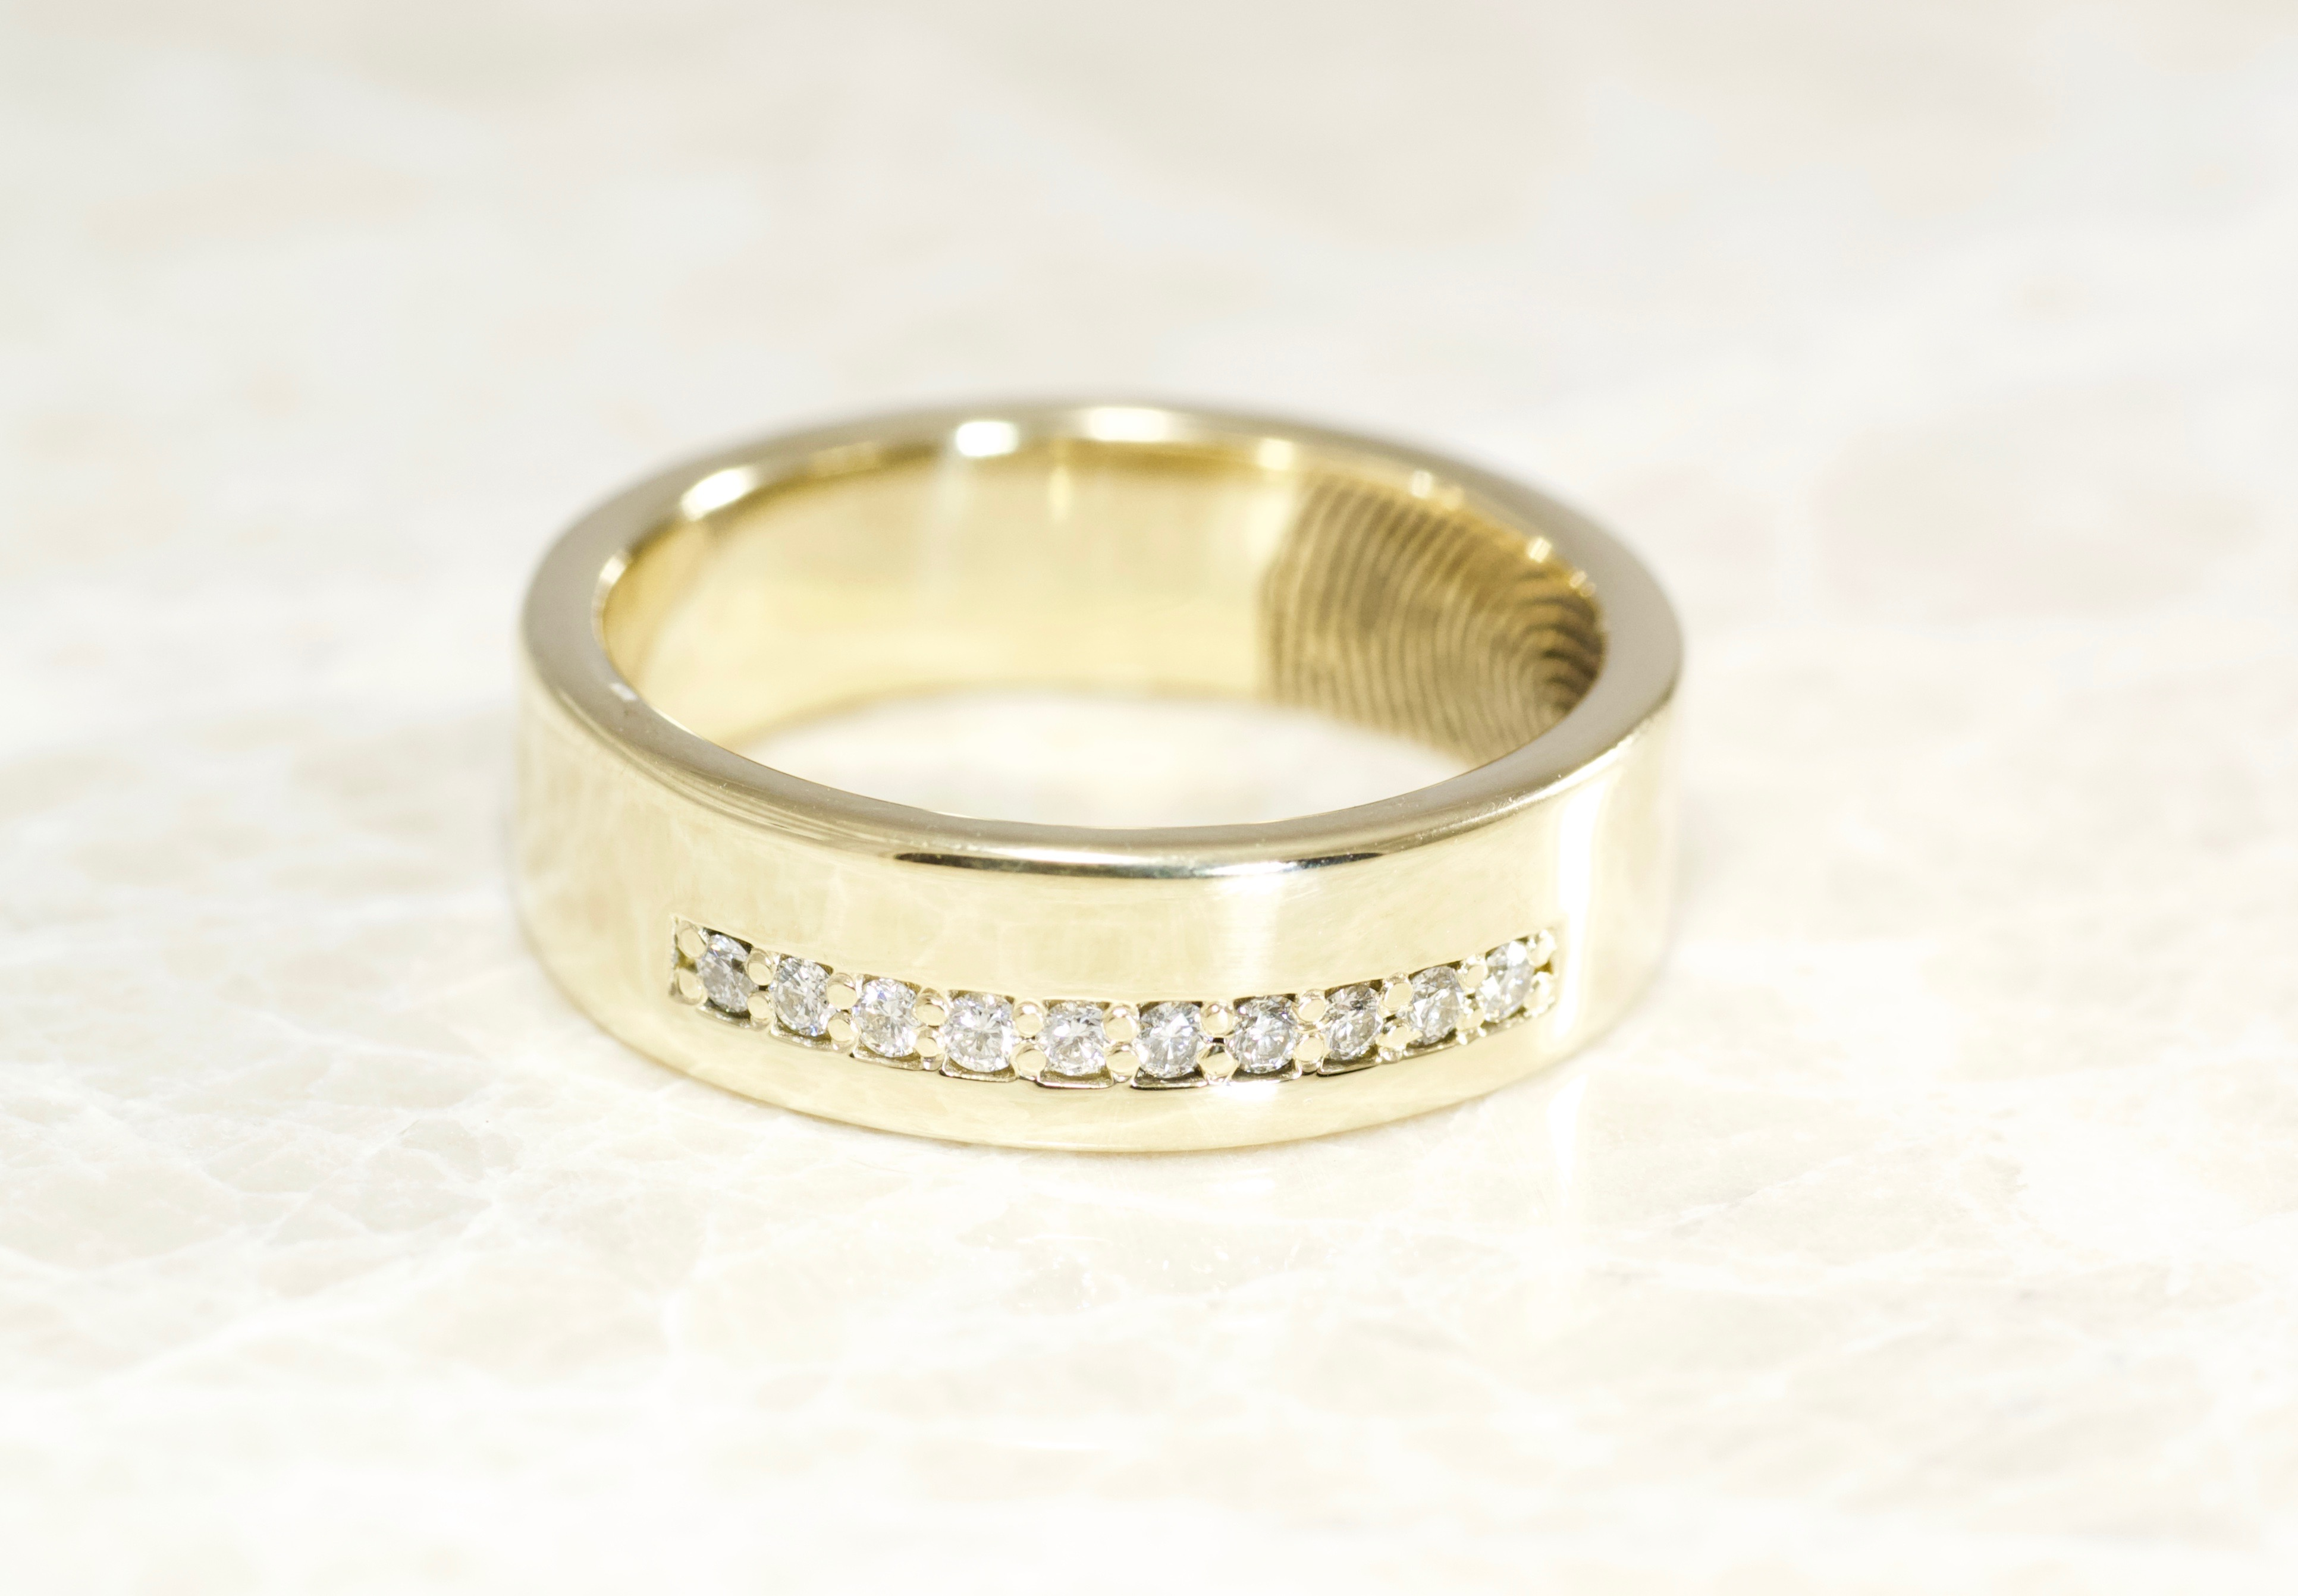 Custom diamonds and 14k yellow gold fingerprint ring by Brent&Jess